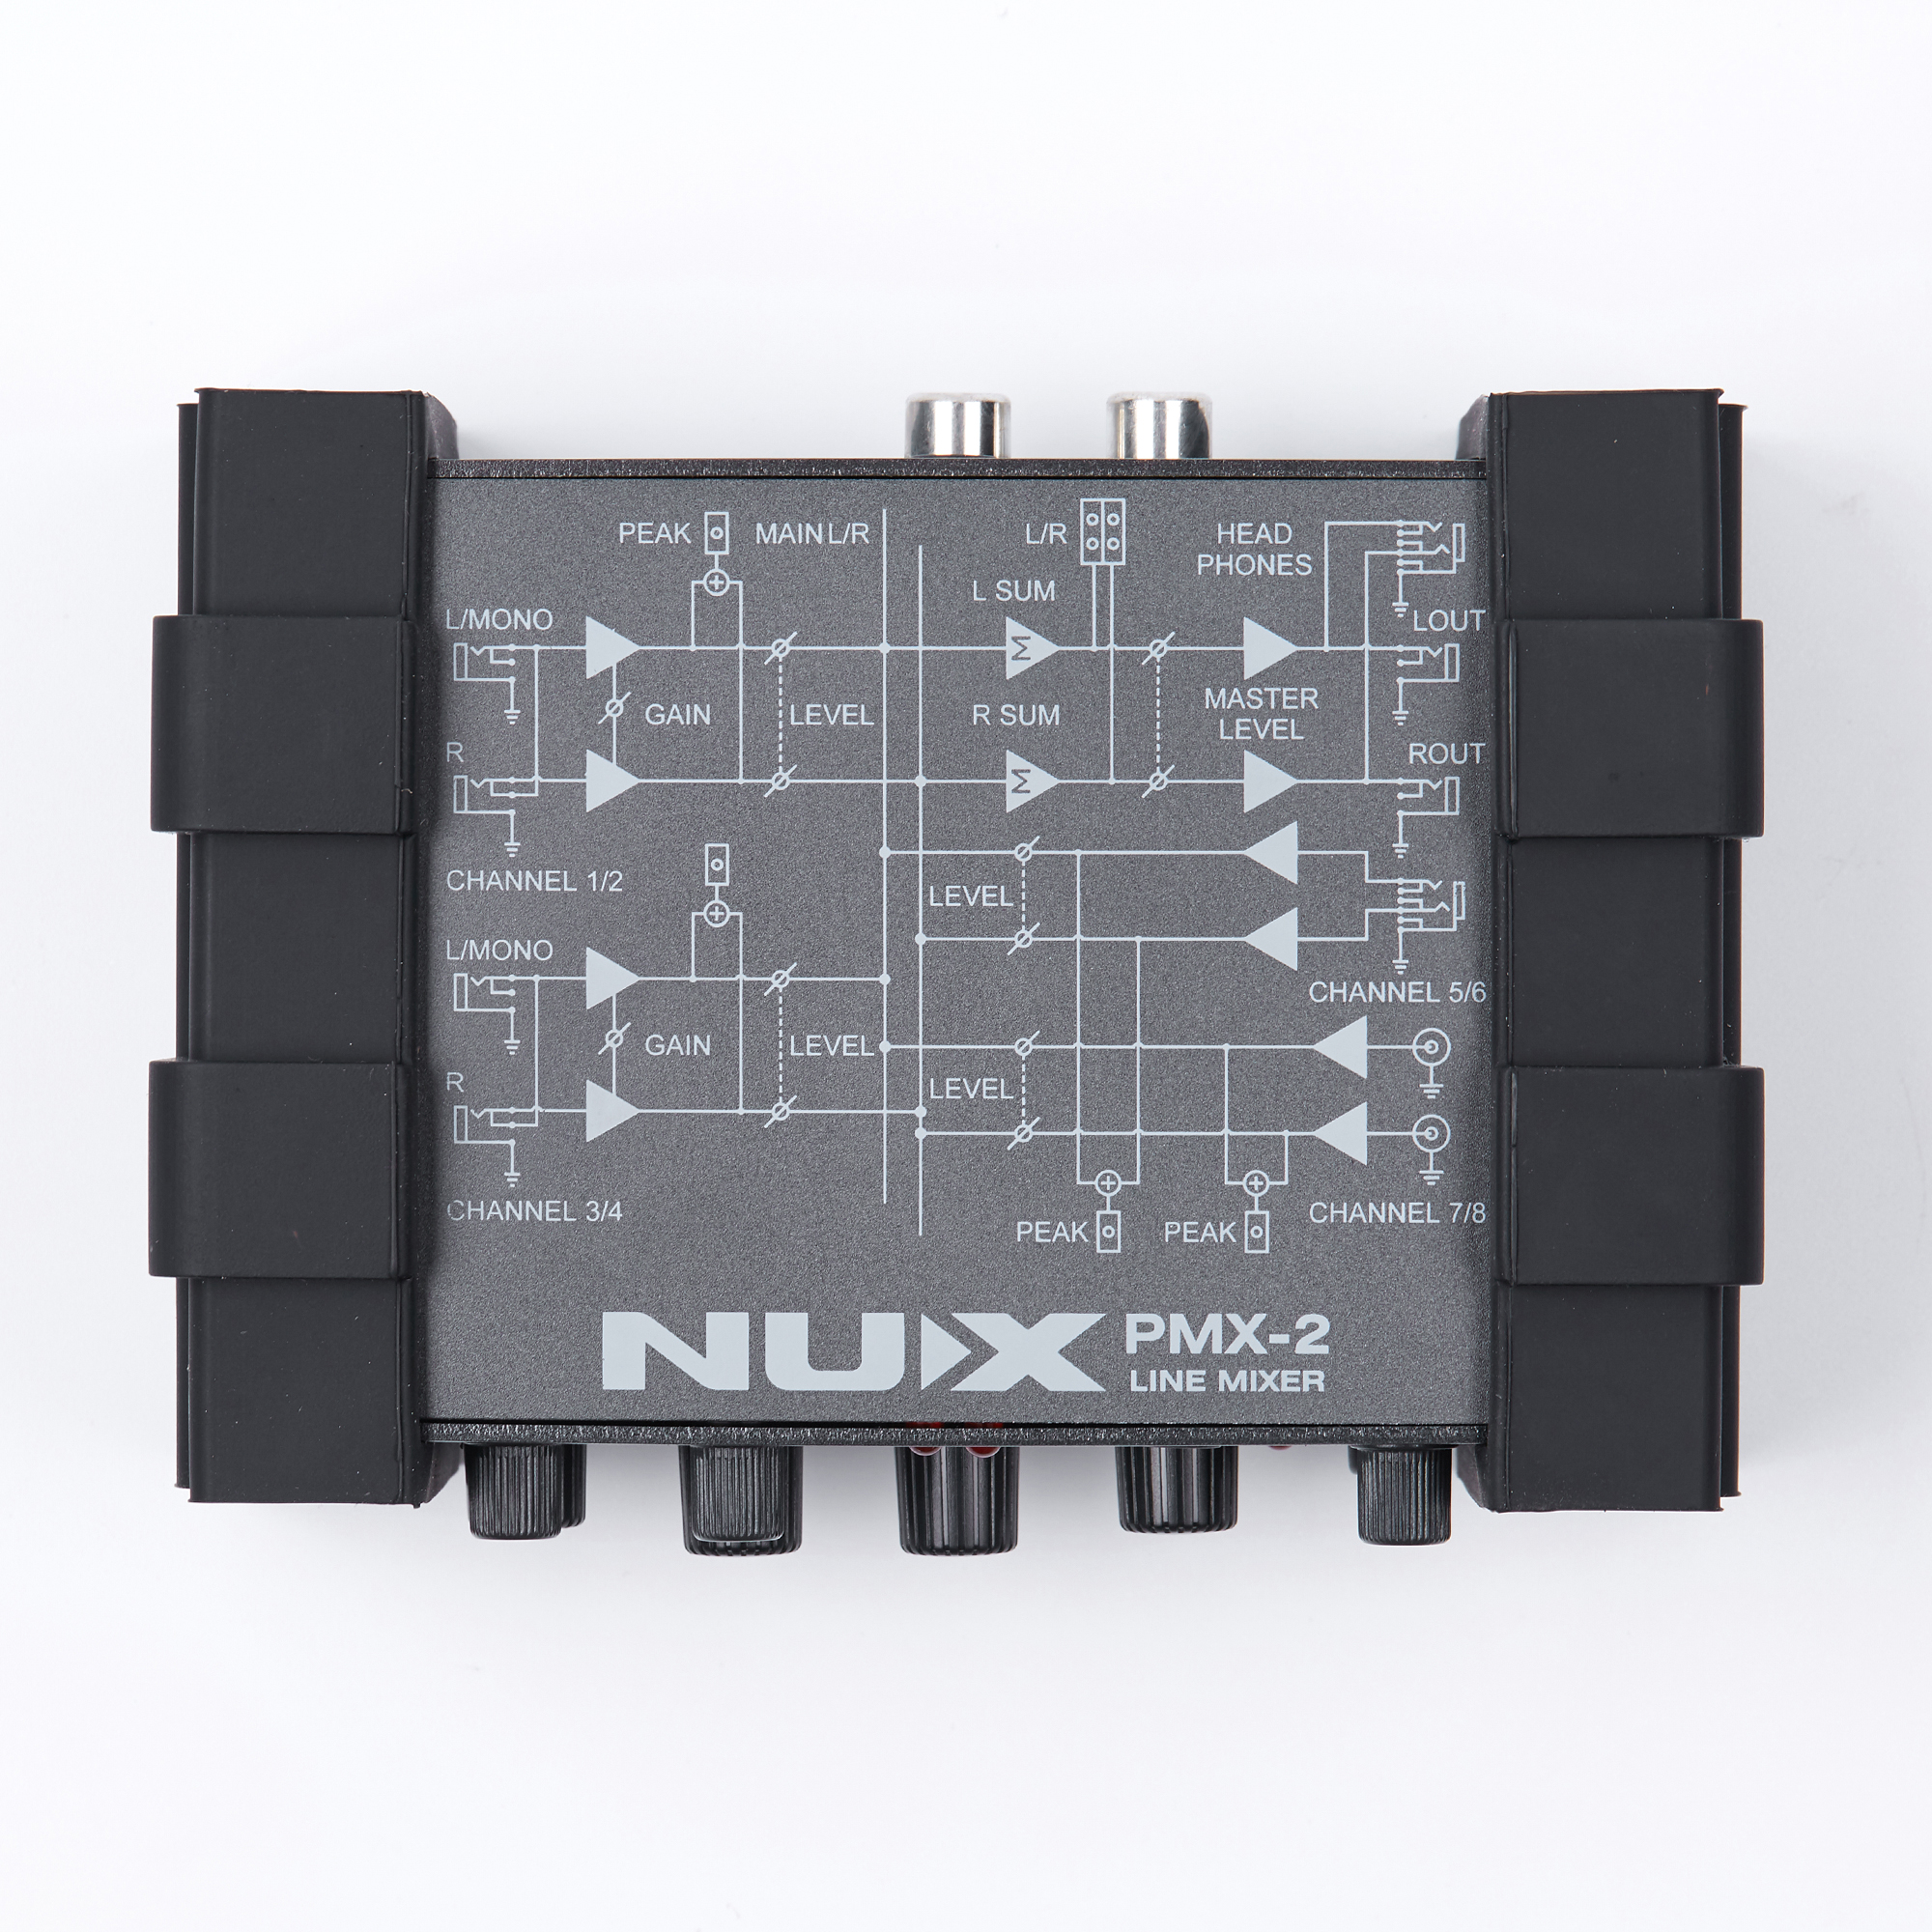 Gain Control 8 Inputs and 2 Outputs NUX PMX-2 Multi-Channel Mini Mixer 30 Musical Instruments Accessories for Guitar Bass Player туфли other ys08 2015